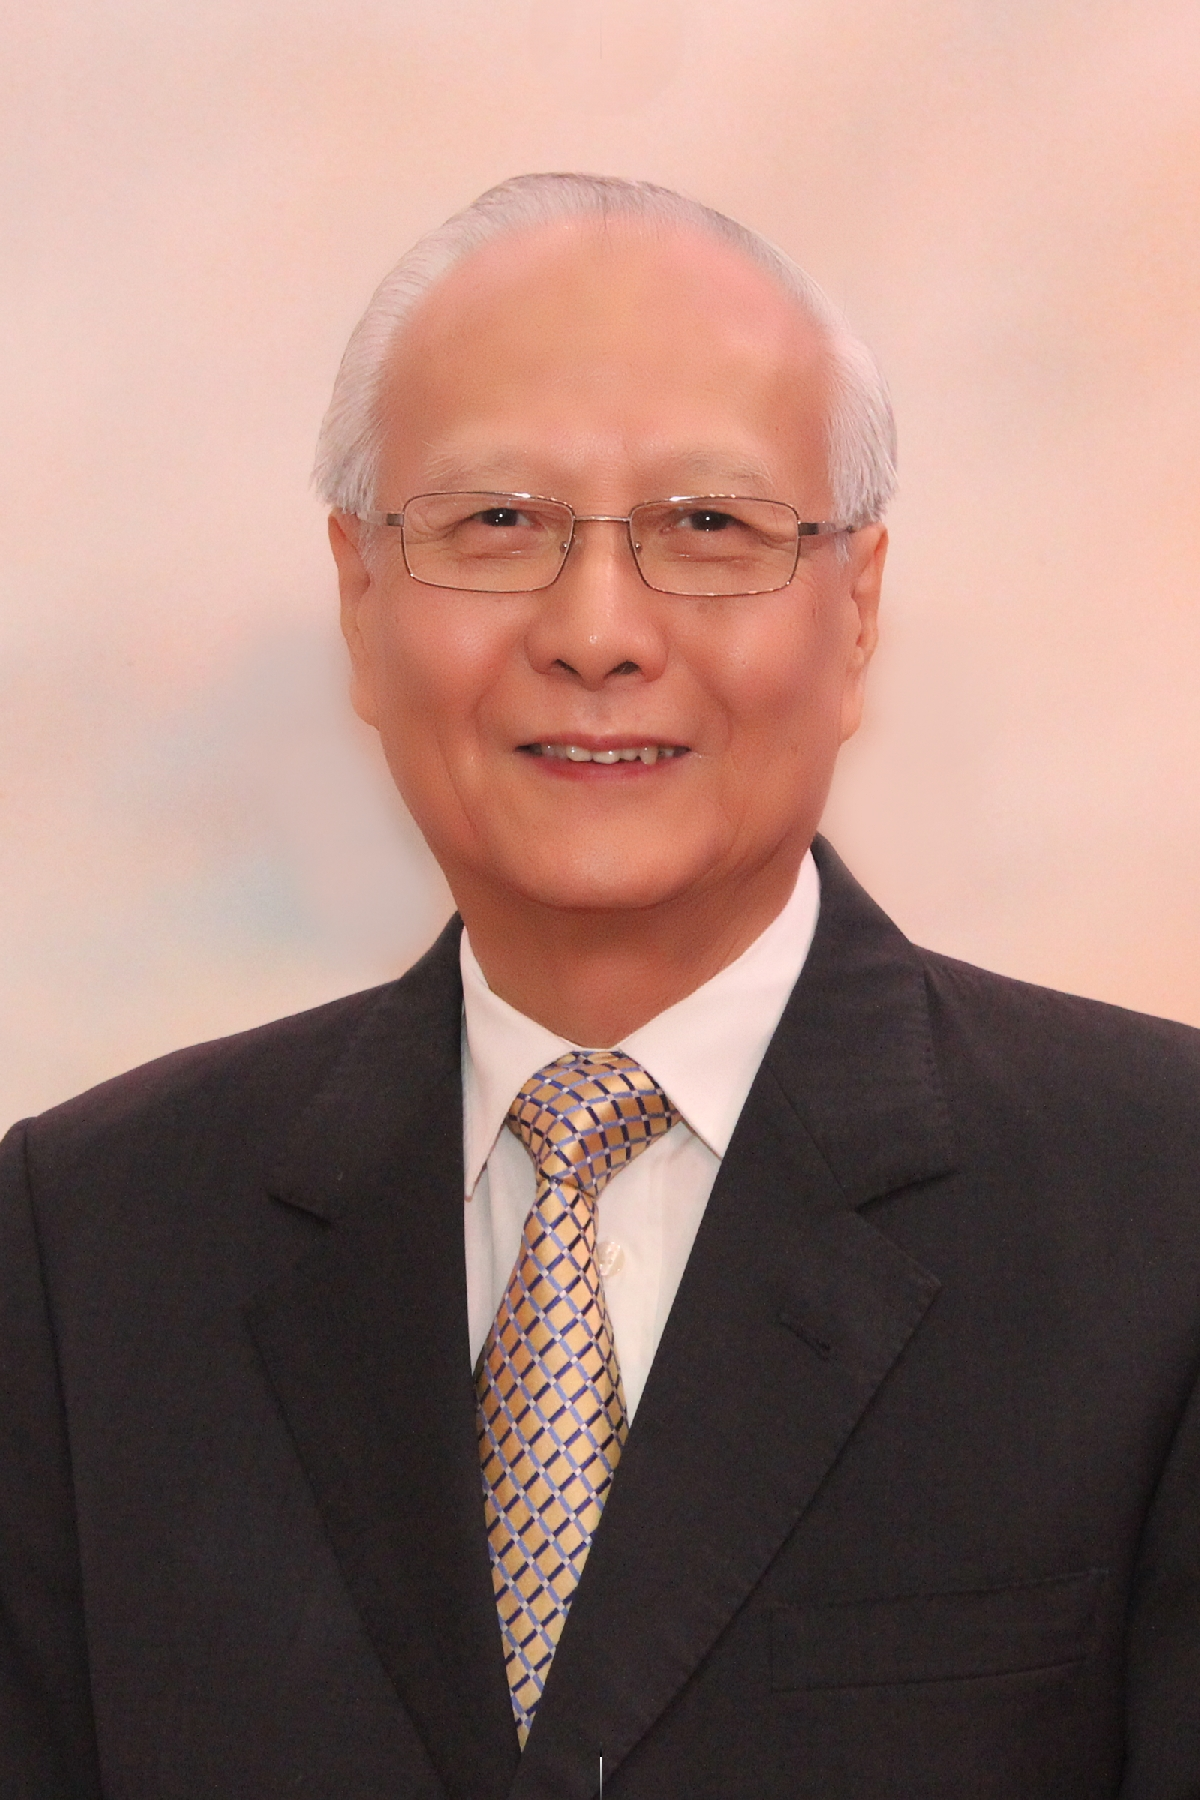 <h80>拿督王俊达</h80><br>Dato' Roland Wong Choon Tat